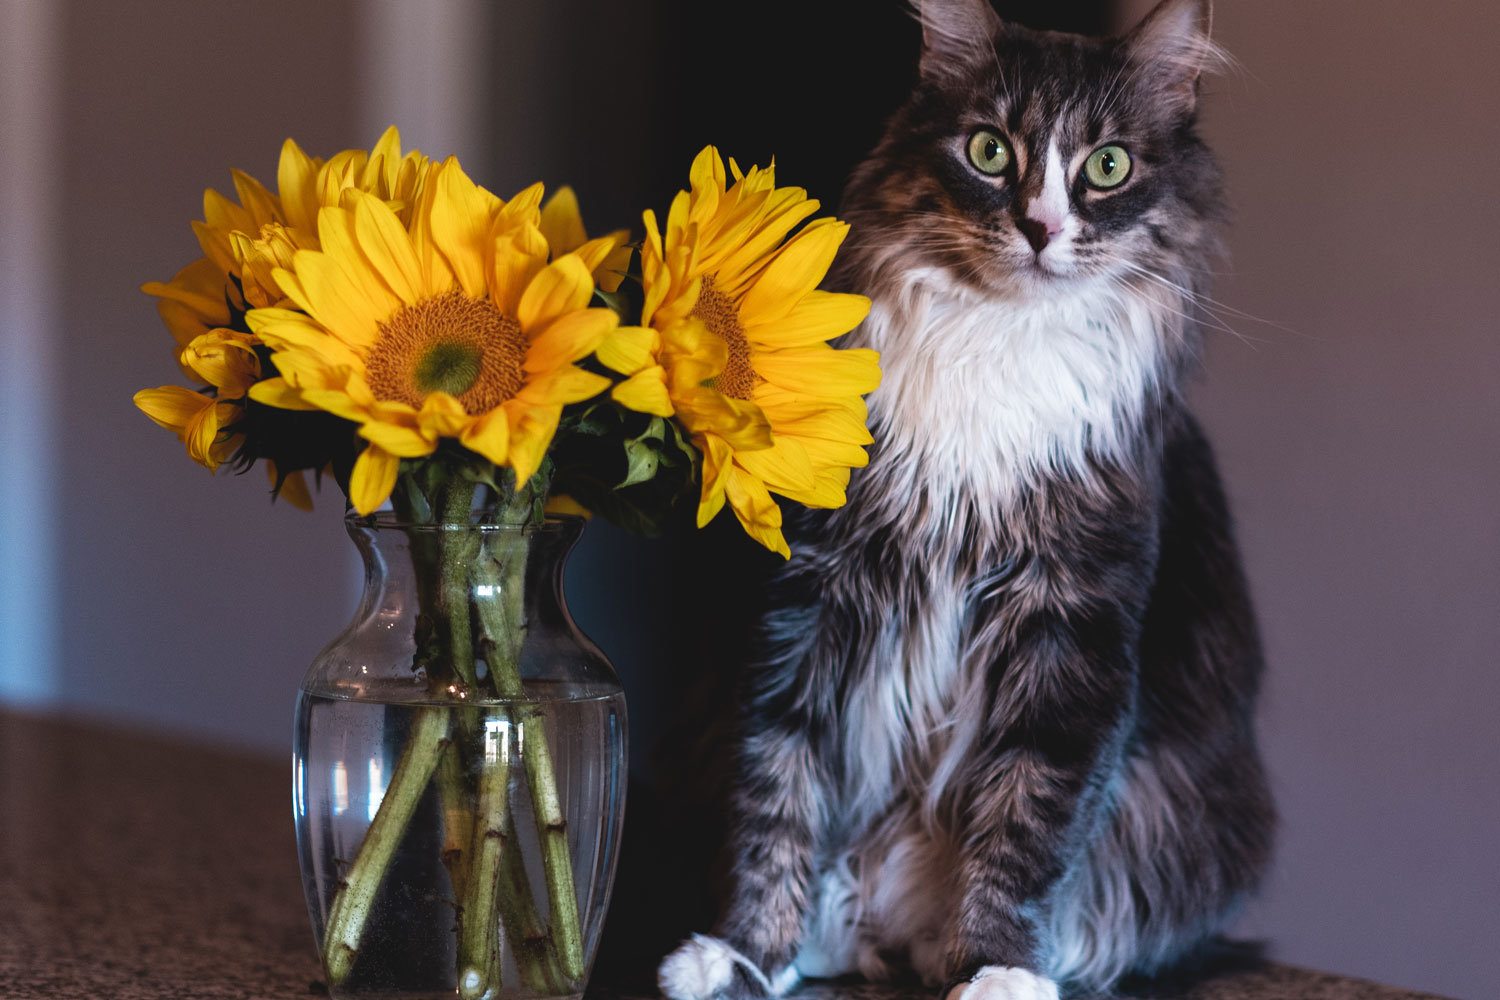 A cat sitting next to a vase with sunflowers, Are Sunflowers Toxic To Cats?